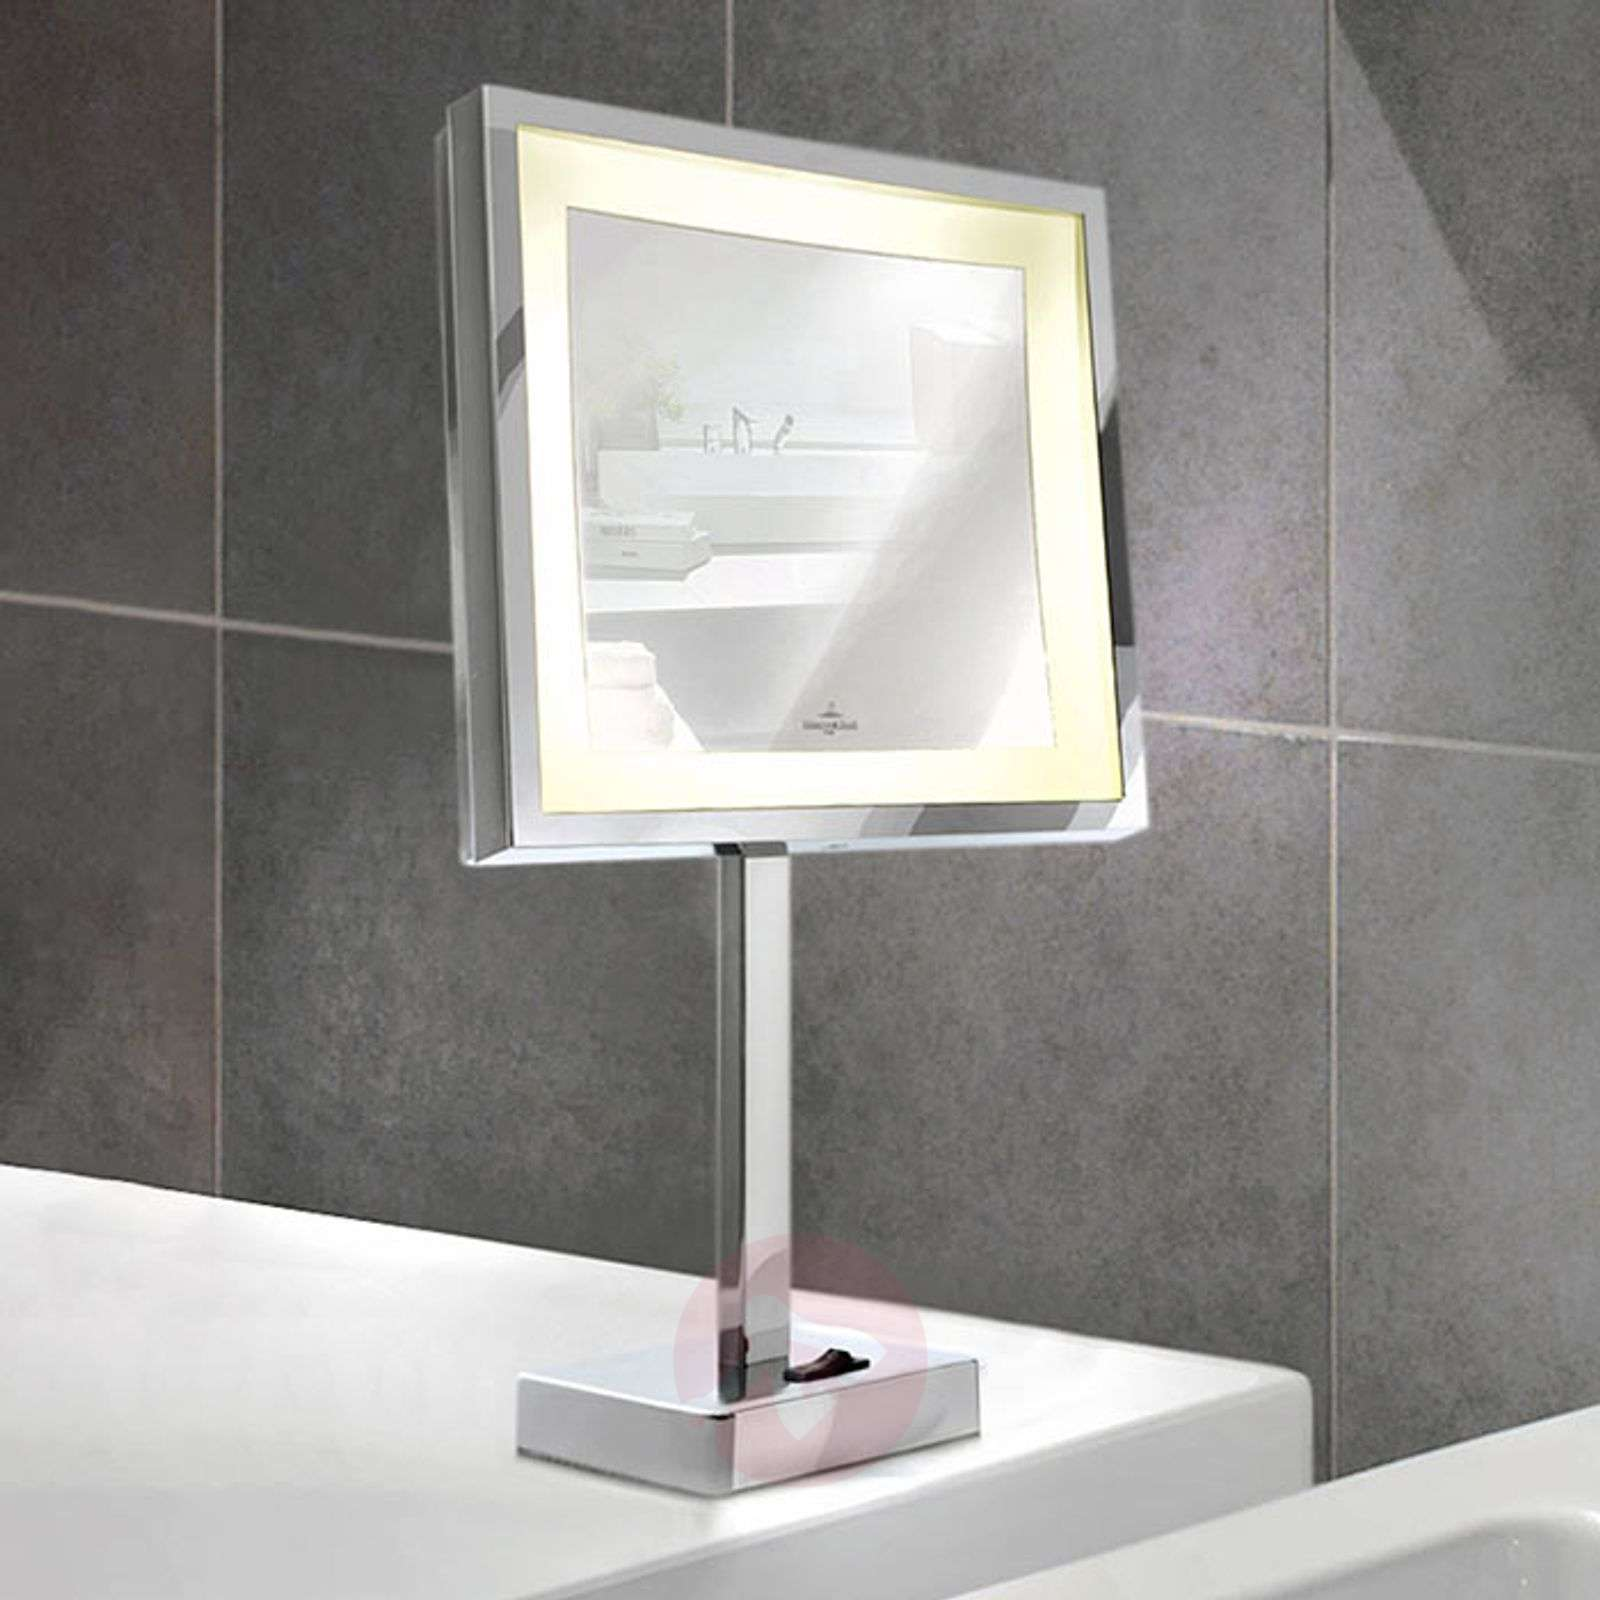 Battery-powered LED cosmetics mirror London-8507620-01